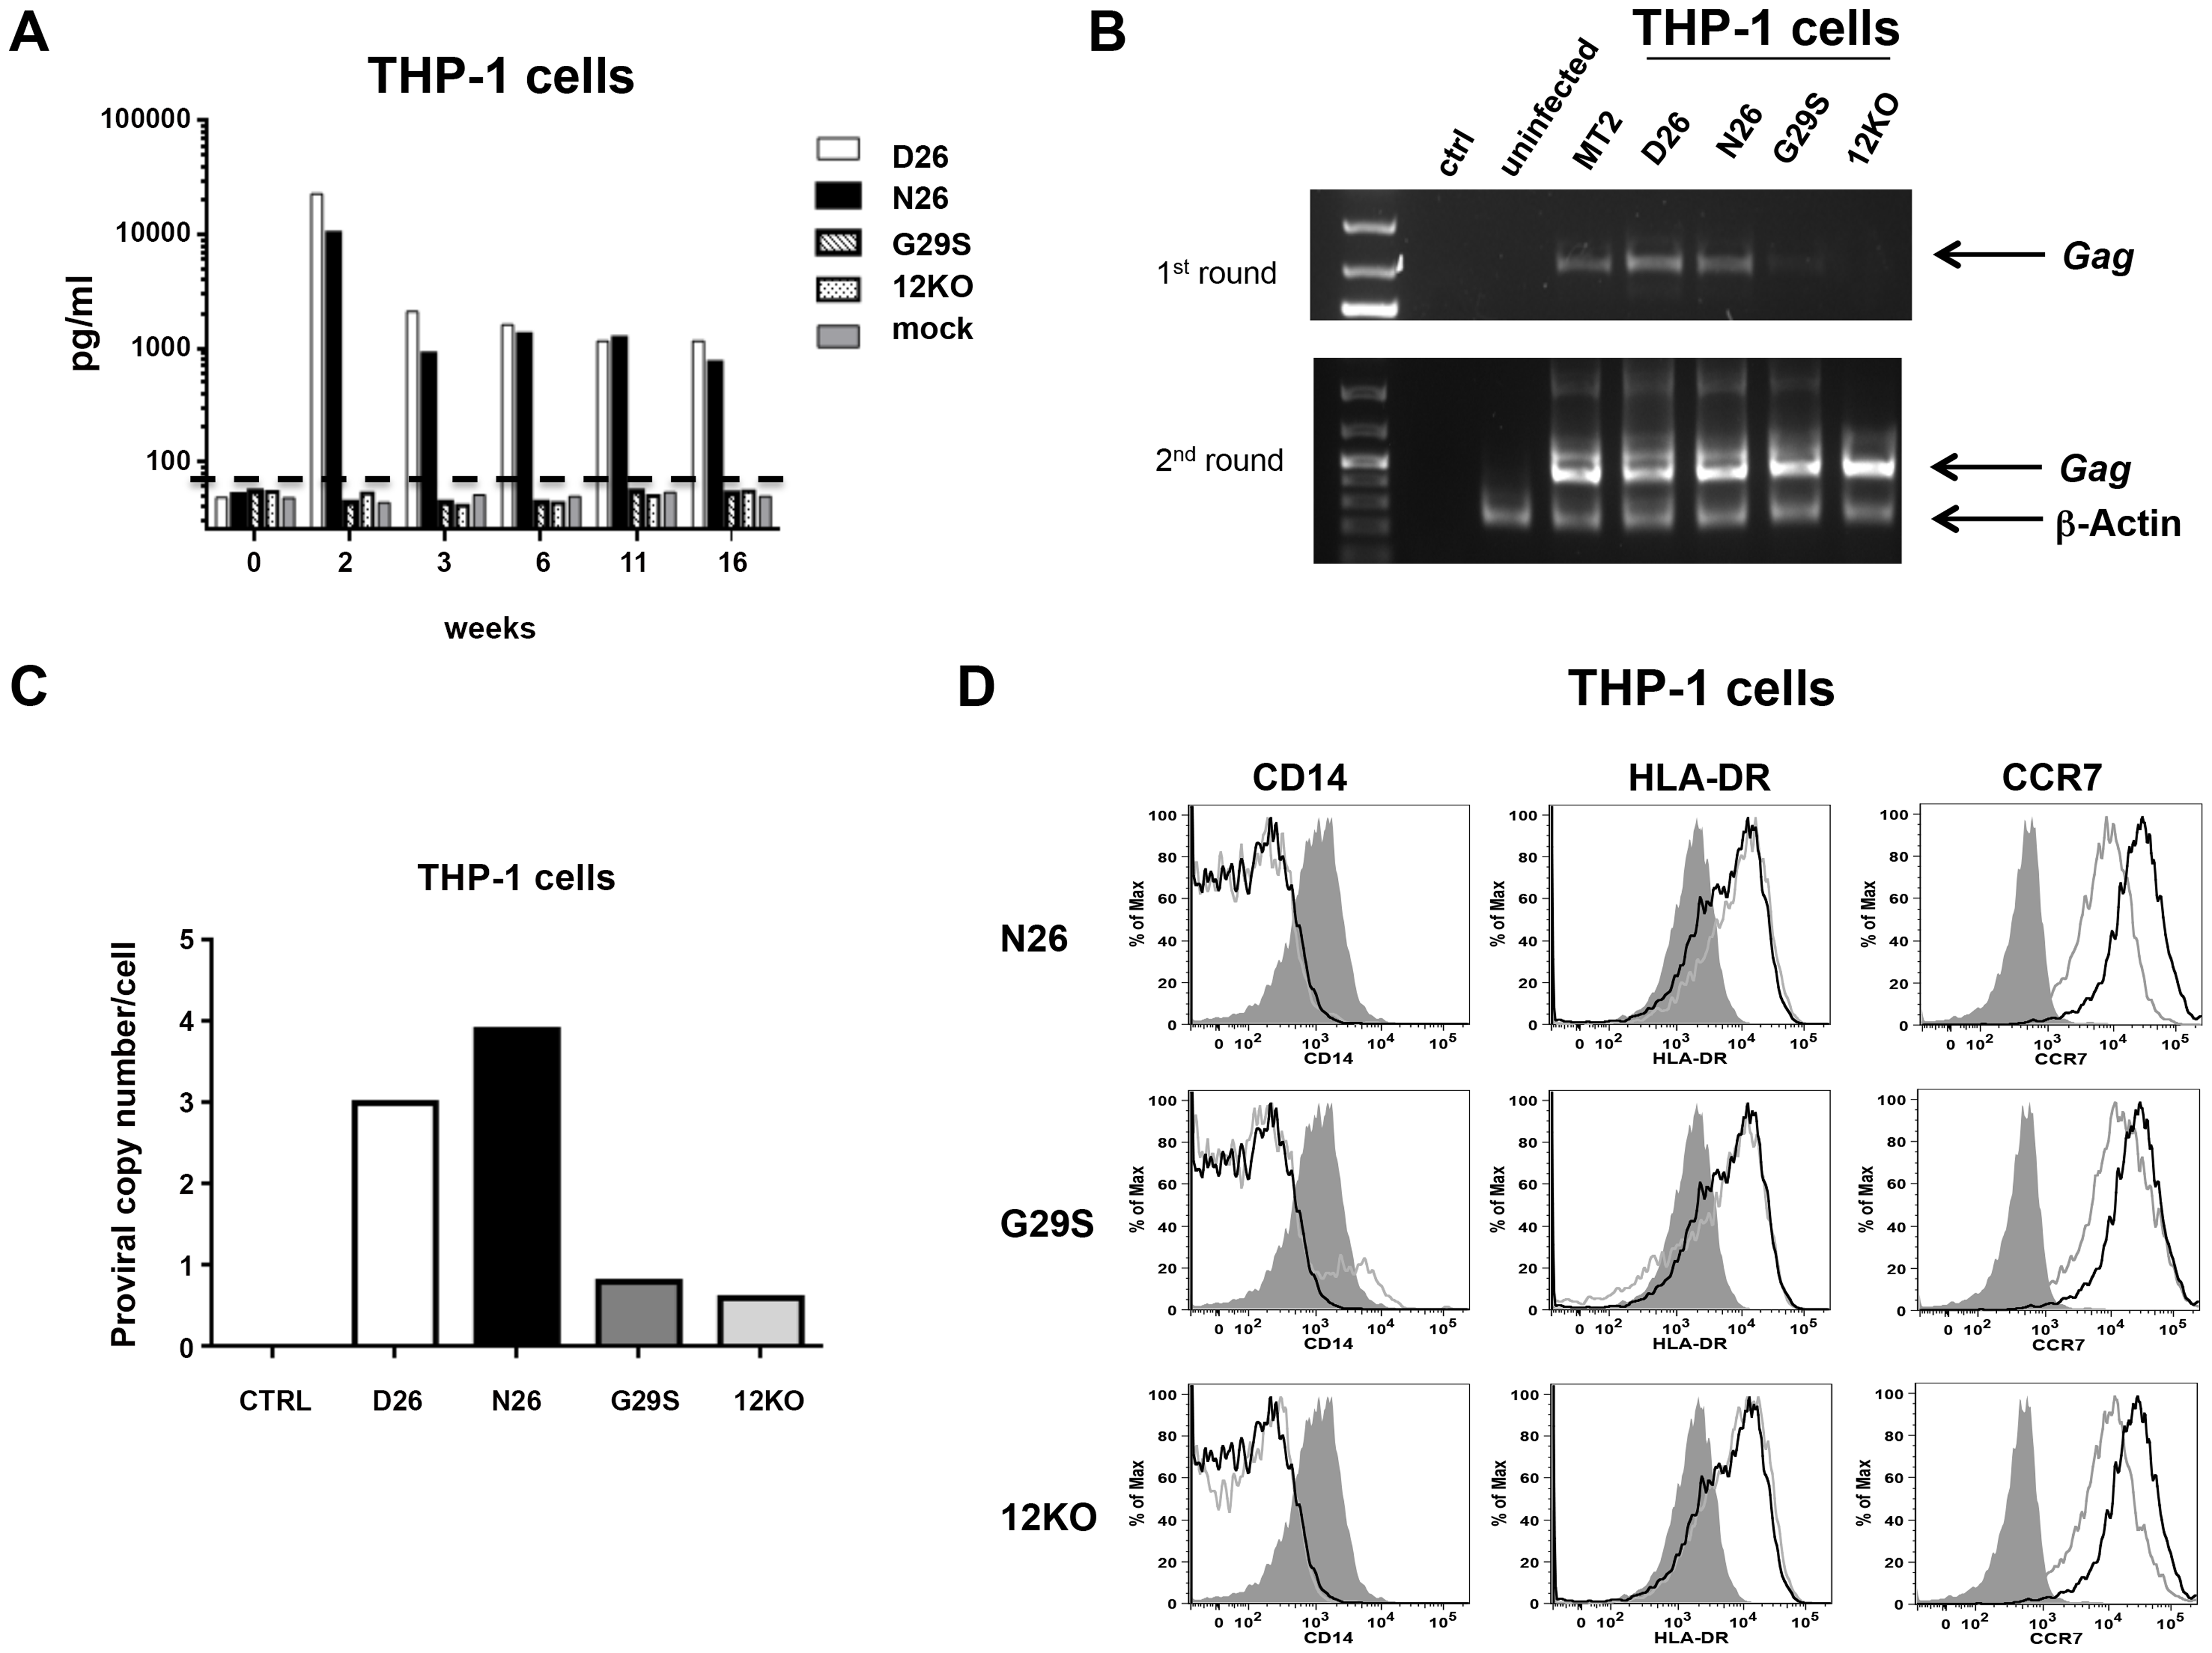 HTLV-1 infection of the monocytic cell line THP-1.